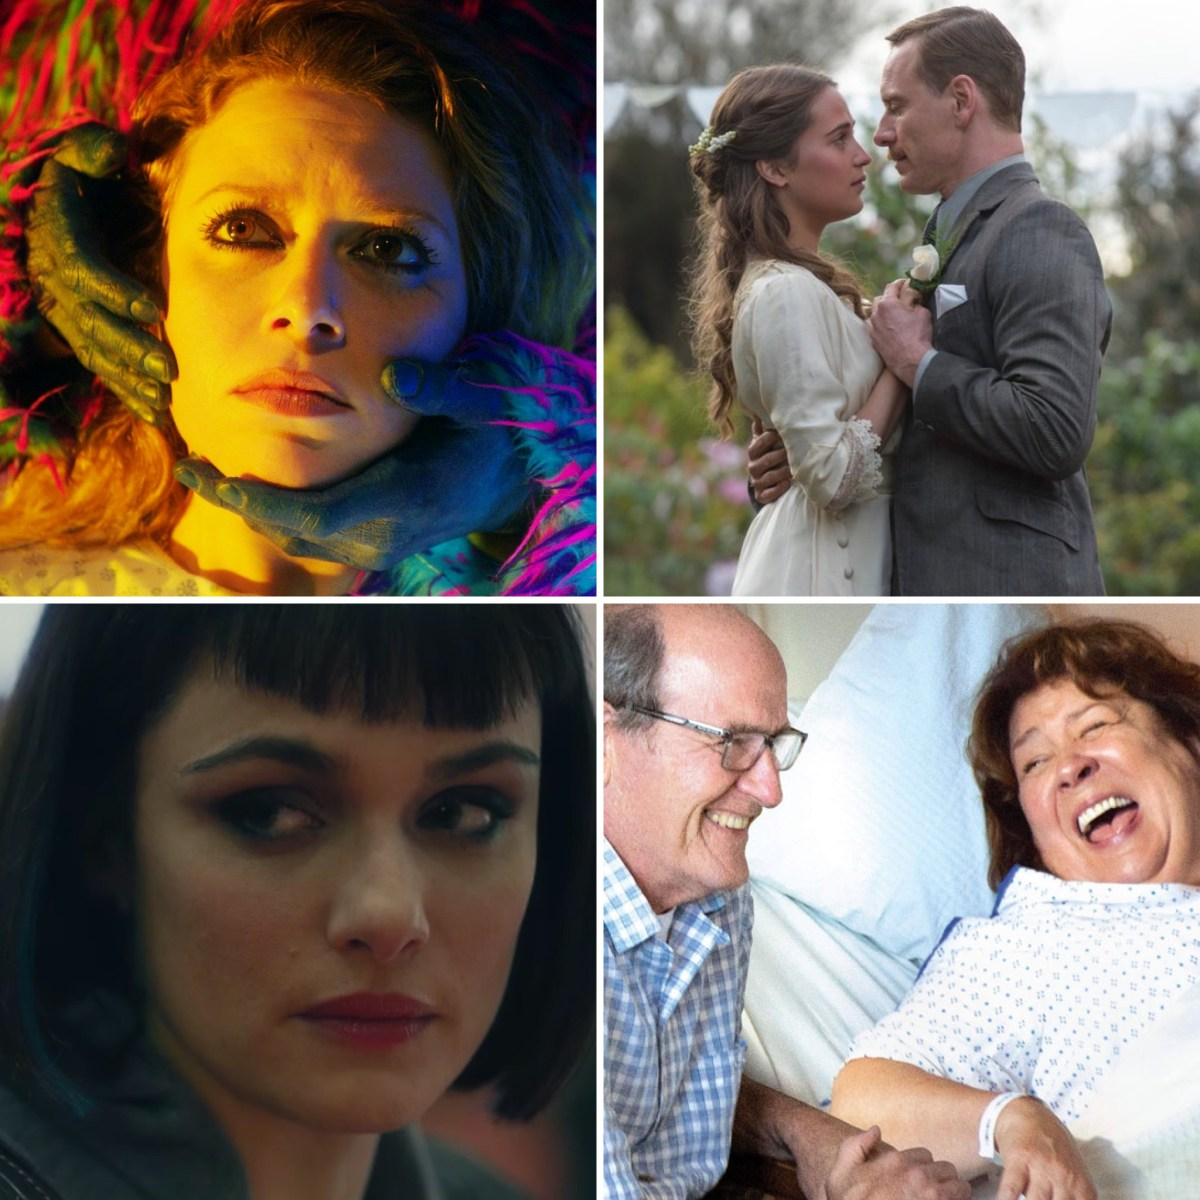 The Binge Movie Podcast: Antibirth (Guest: Joshua Grannell) | The Light Between Oceans | Complete Unknown | The Hollars